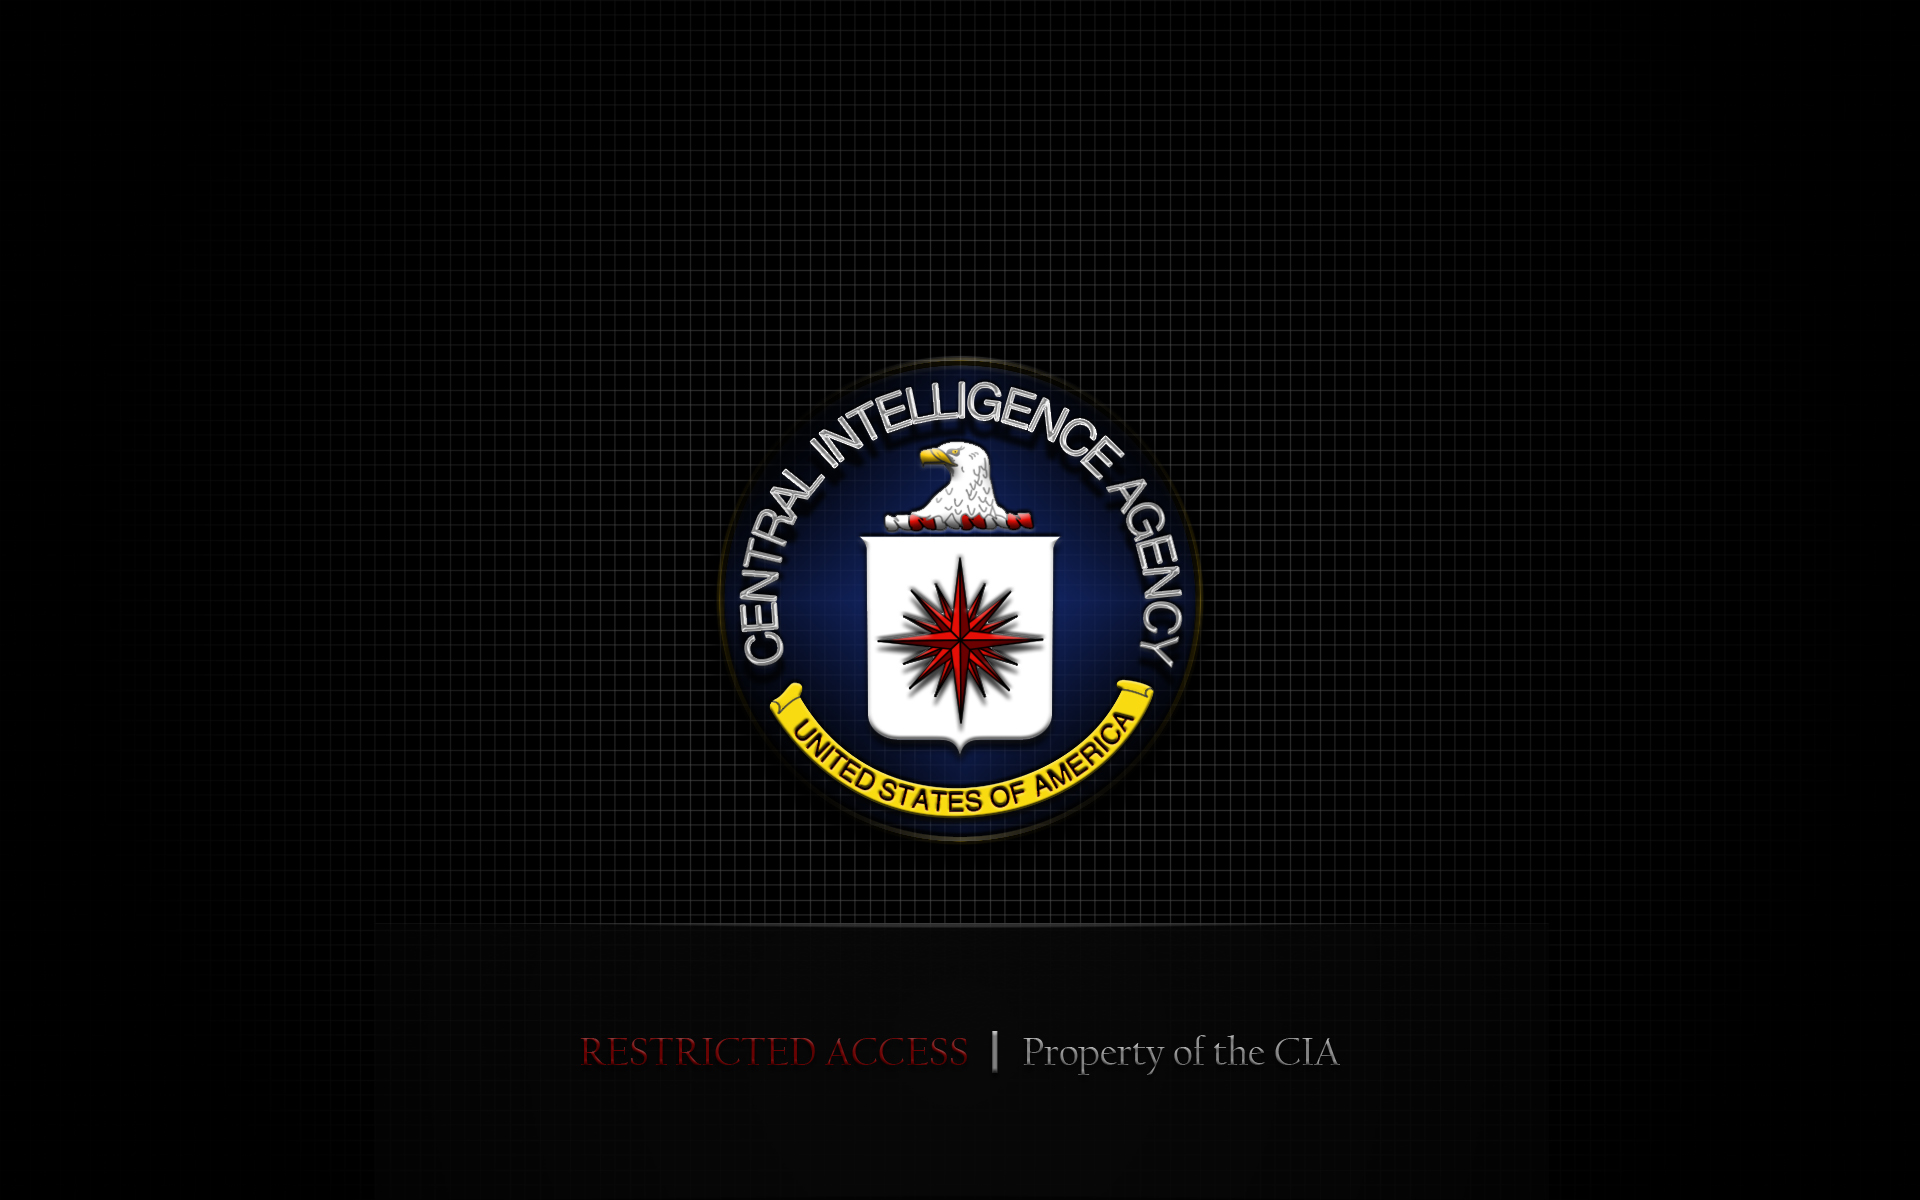 Cia Wallpaper - WallpaperSafari